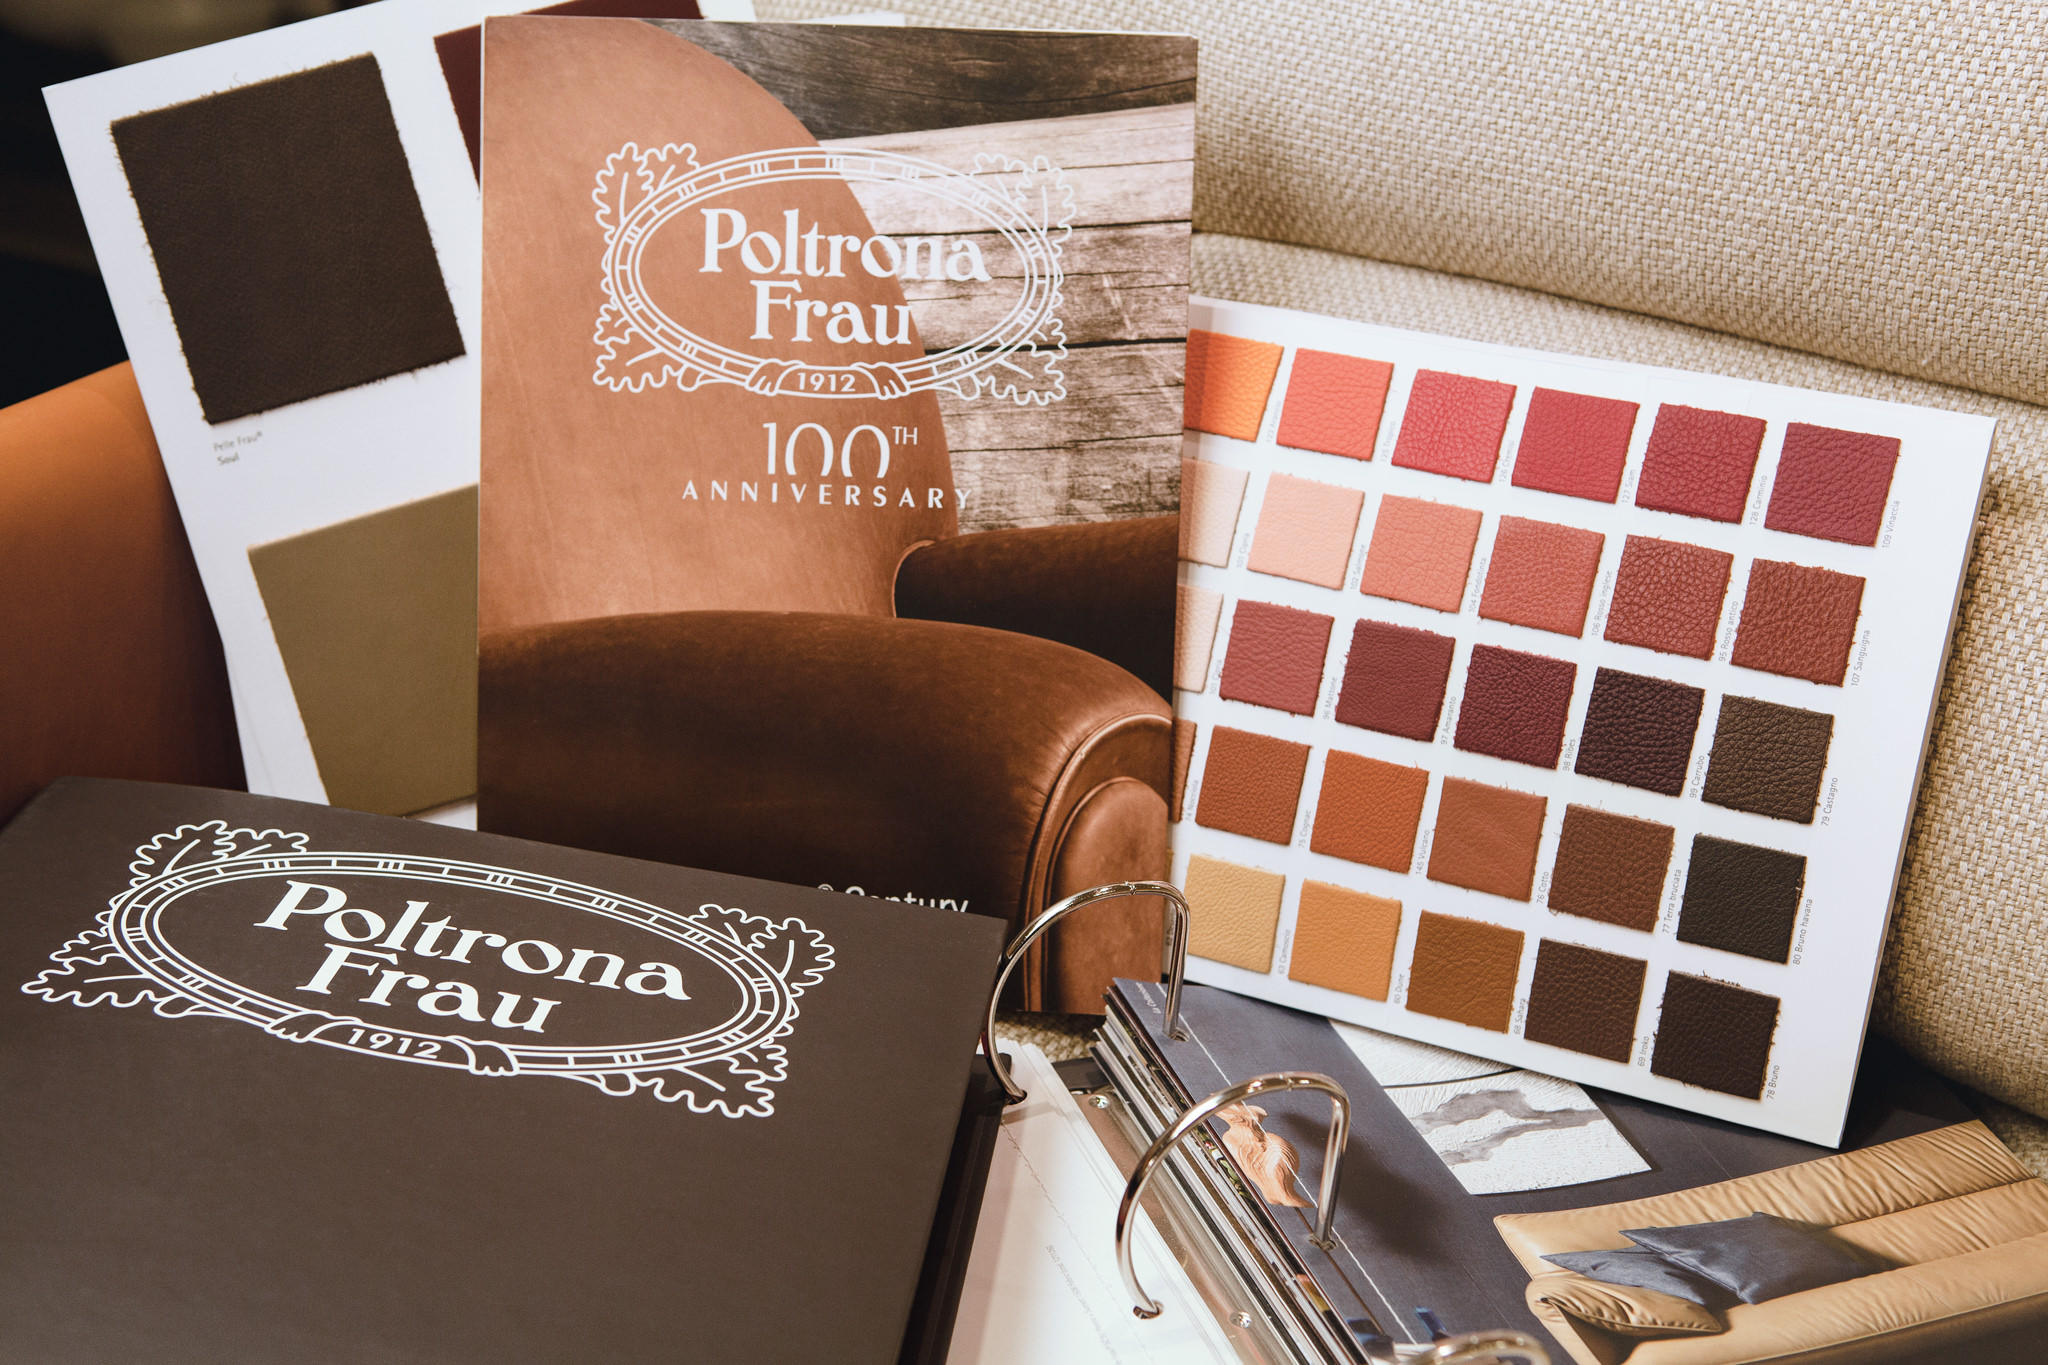 Wrj design in jackson hole invests in employee education for Poltrone frau milano